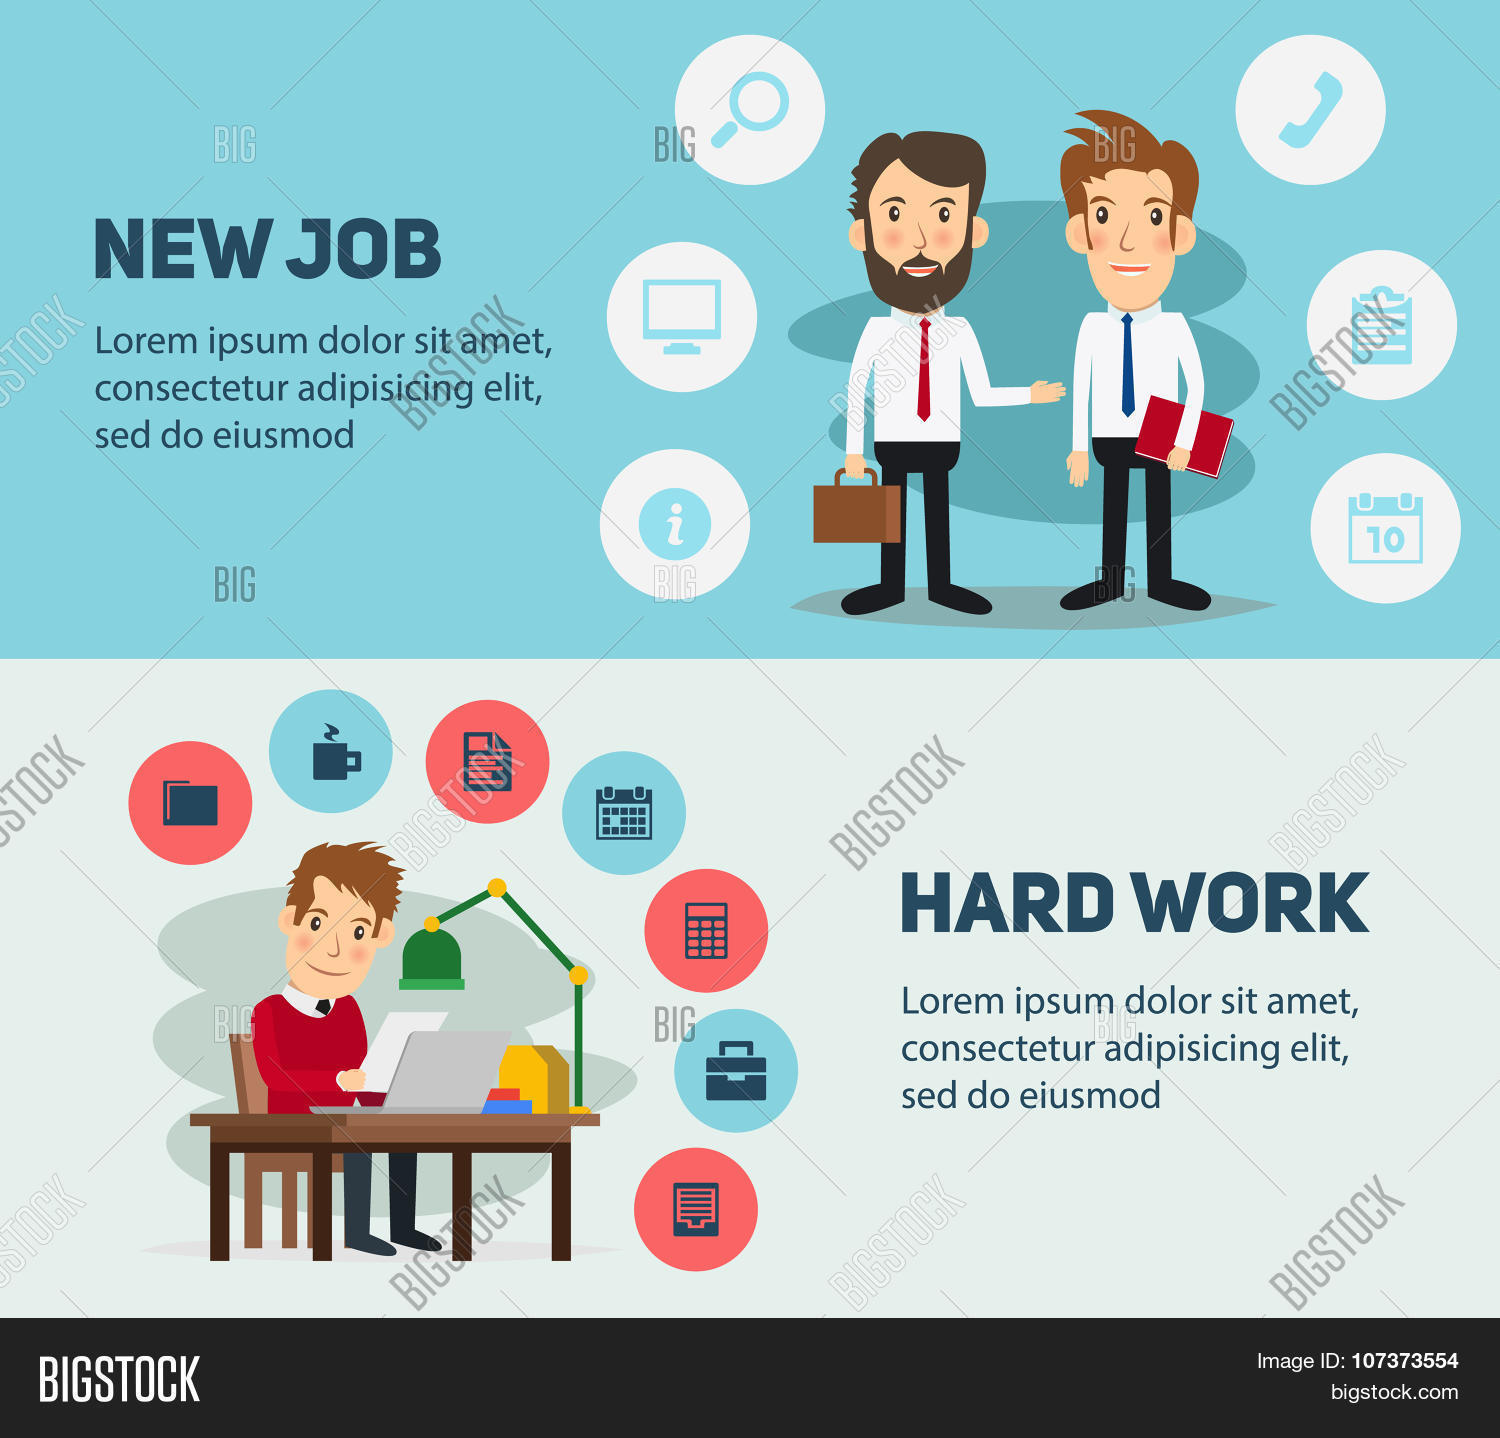 new job search and stress work infographic office life business new job search and stress work infographic office life business man people in action